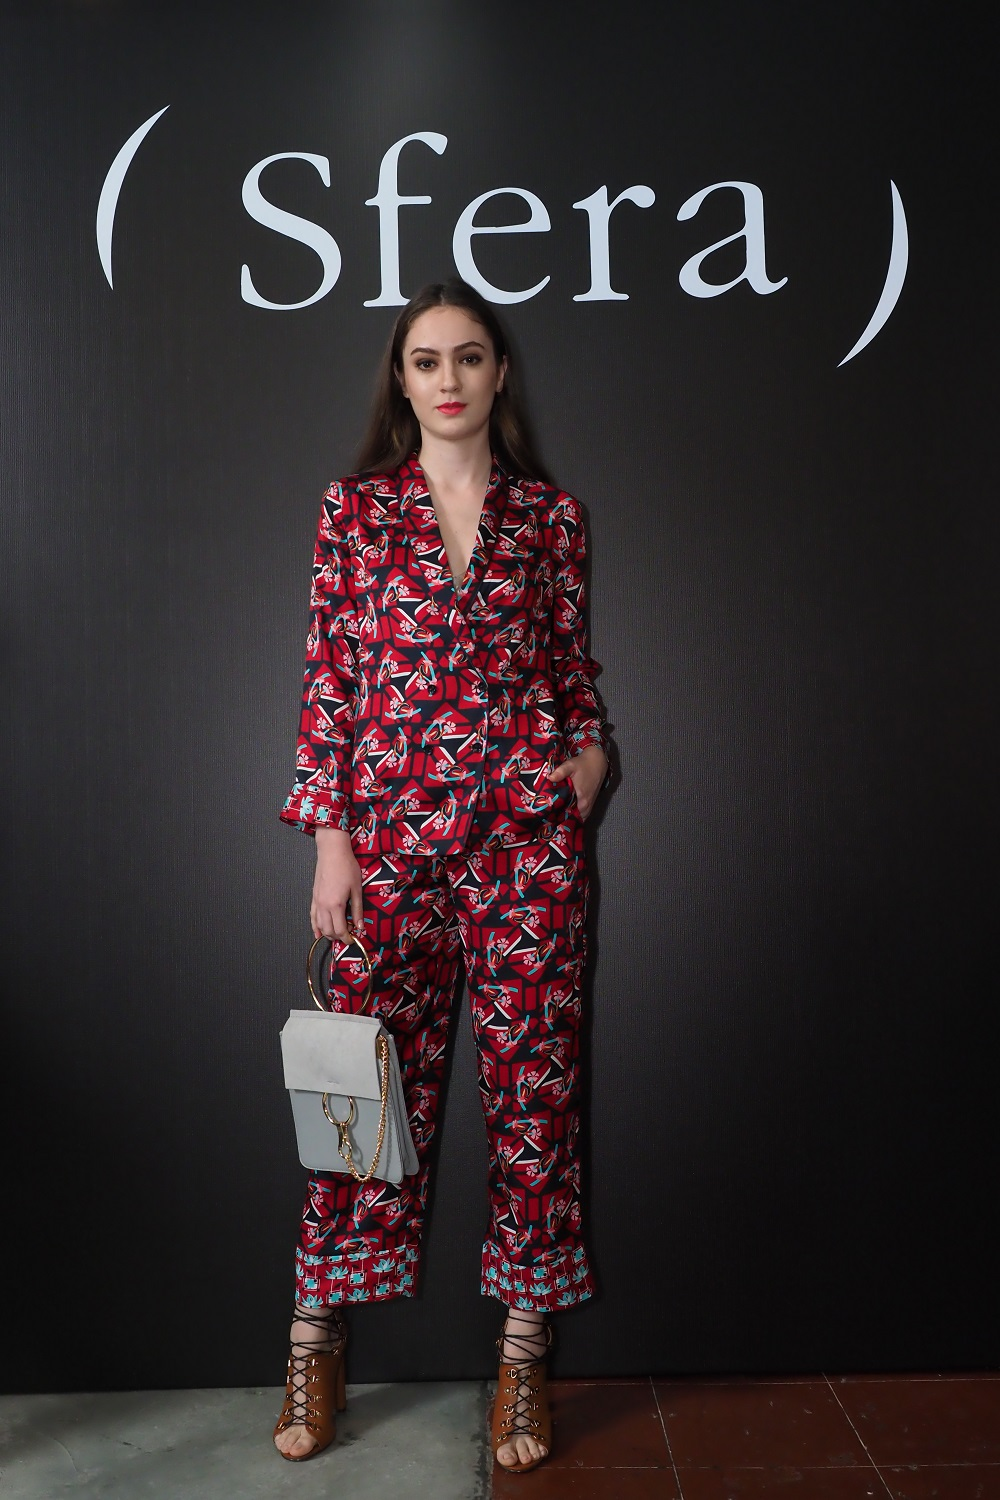 Fall sfera winter collection best photo